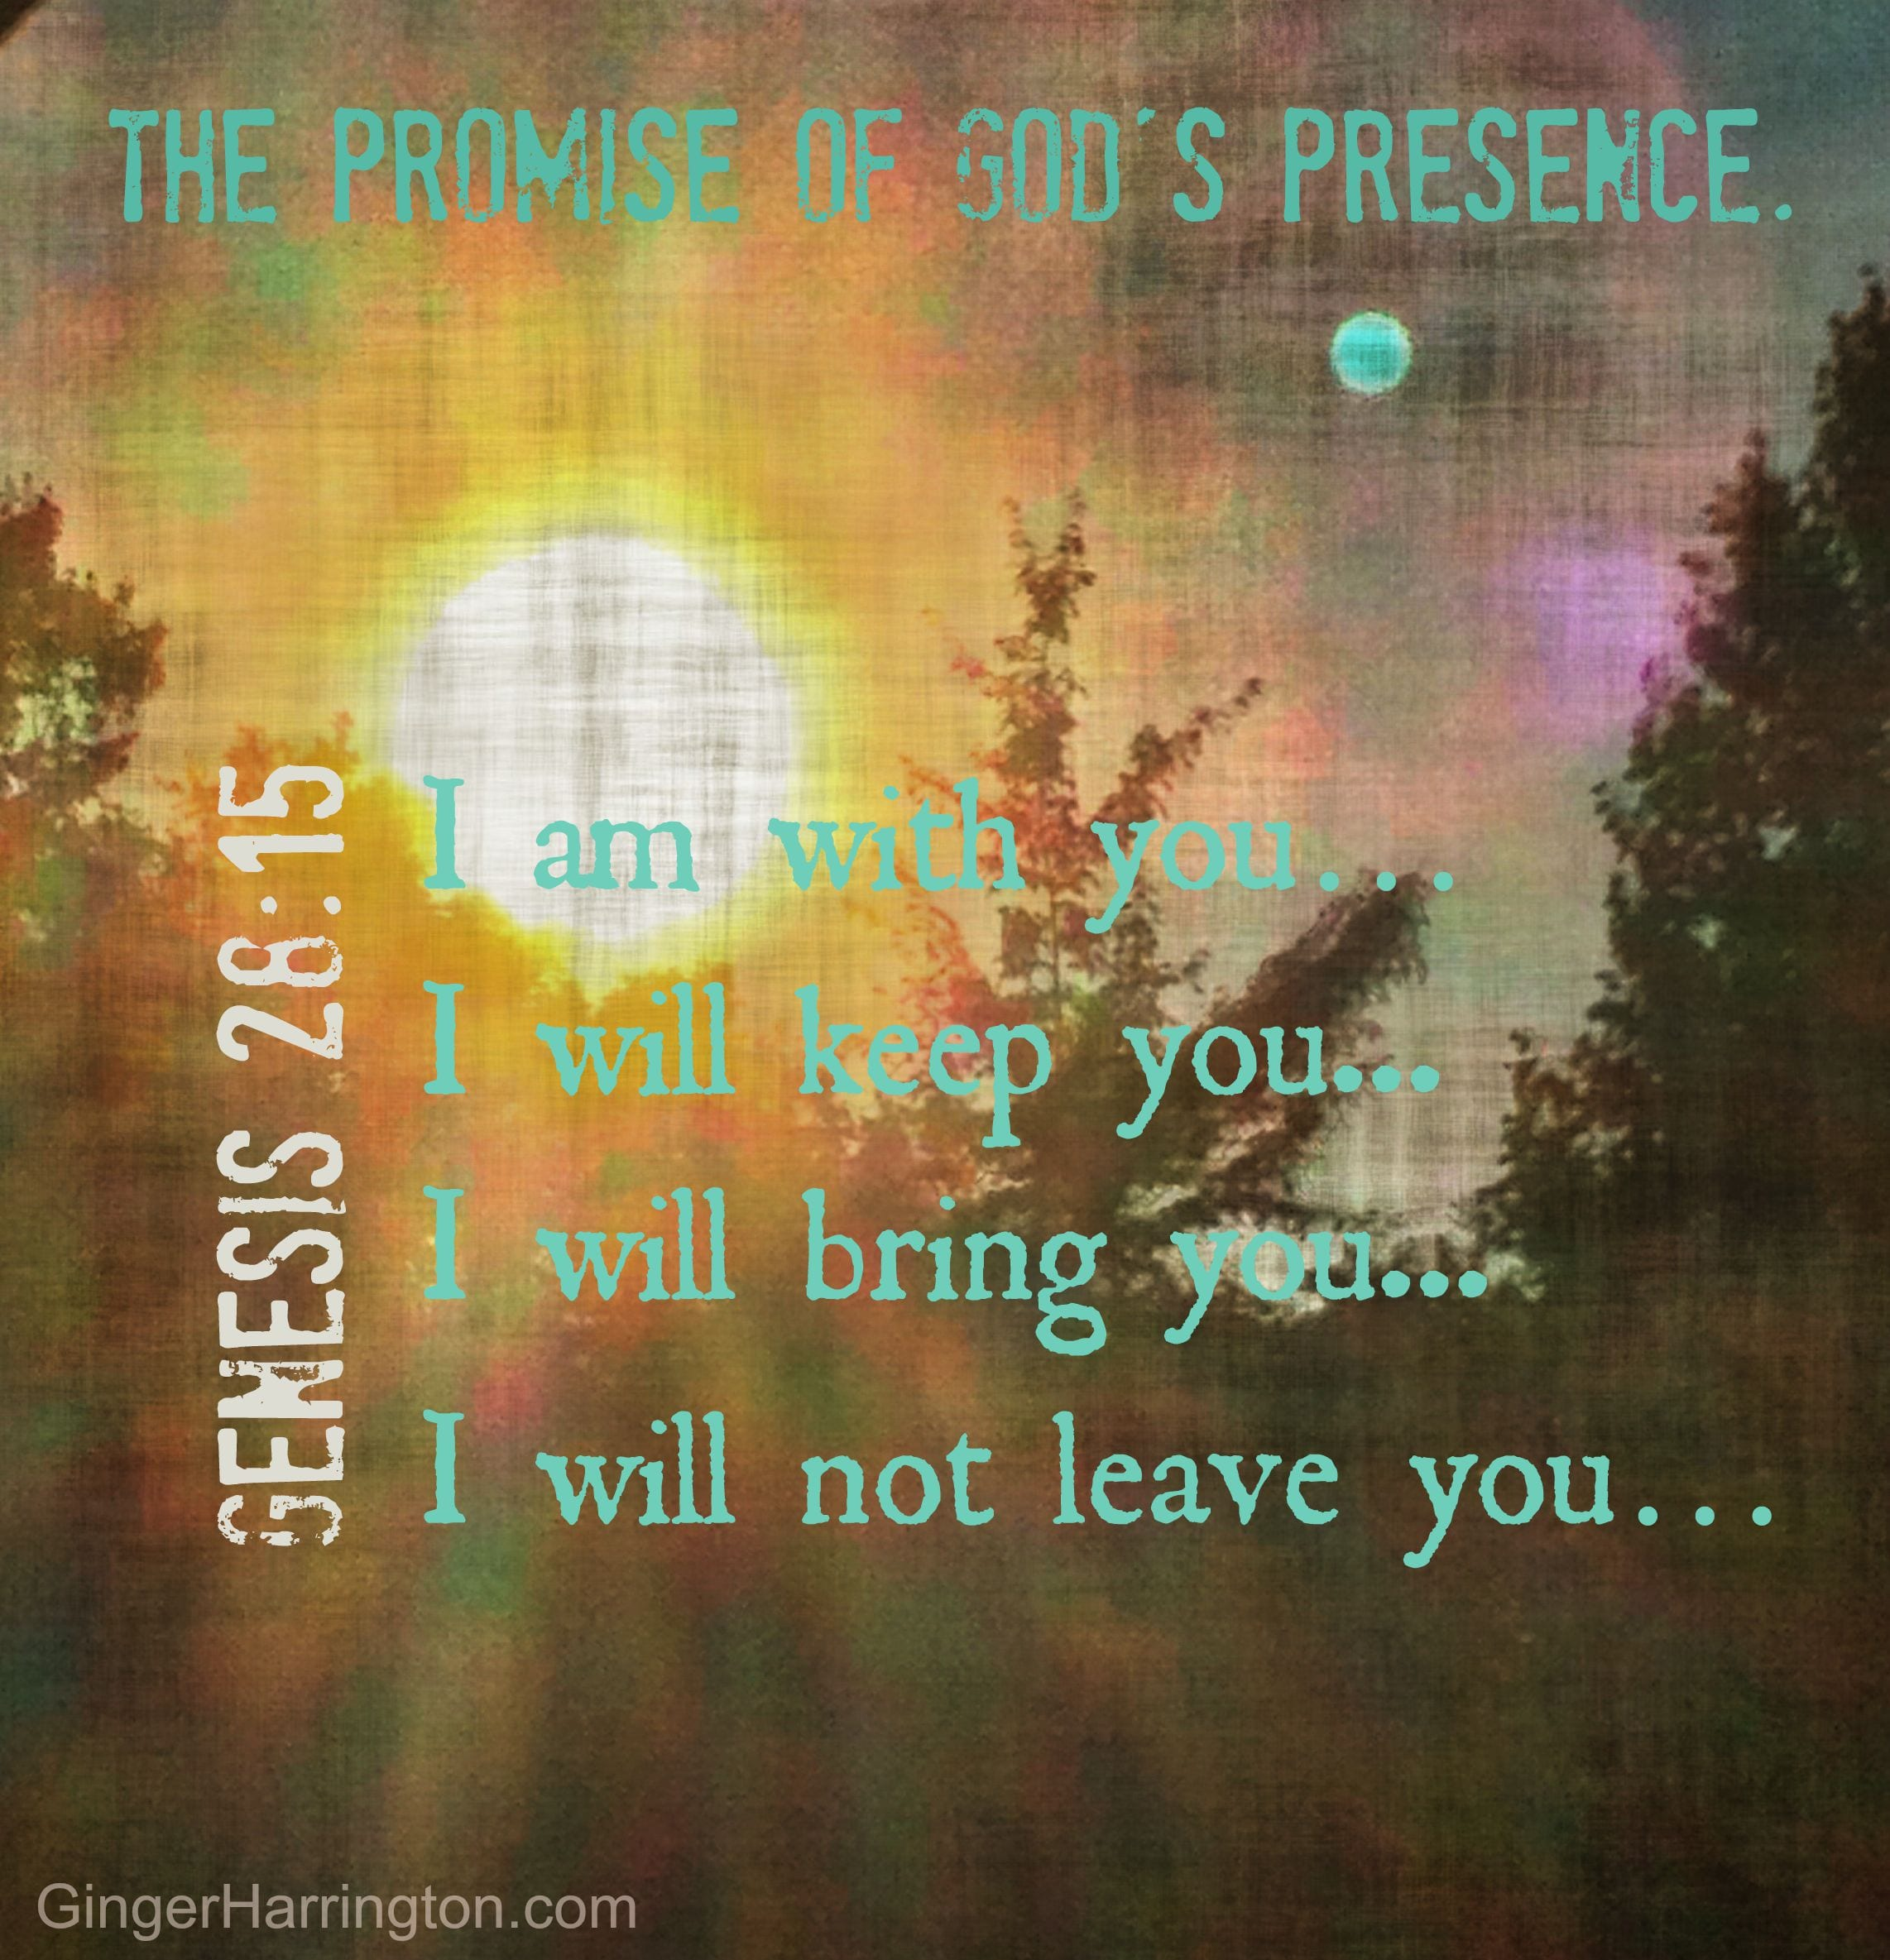 Pray the promise of God's presence for your children.